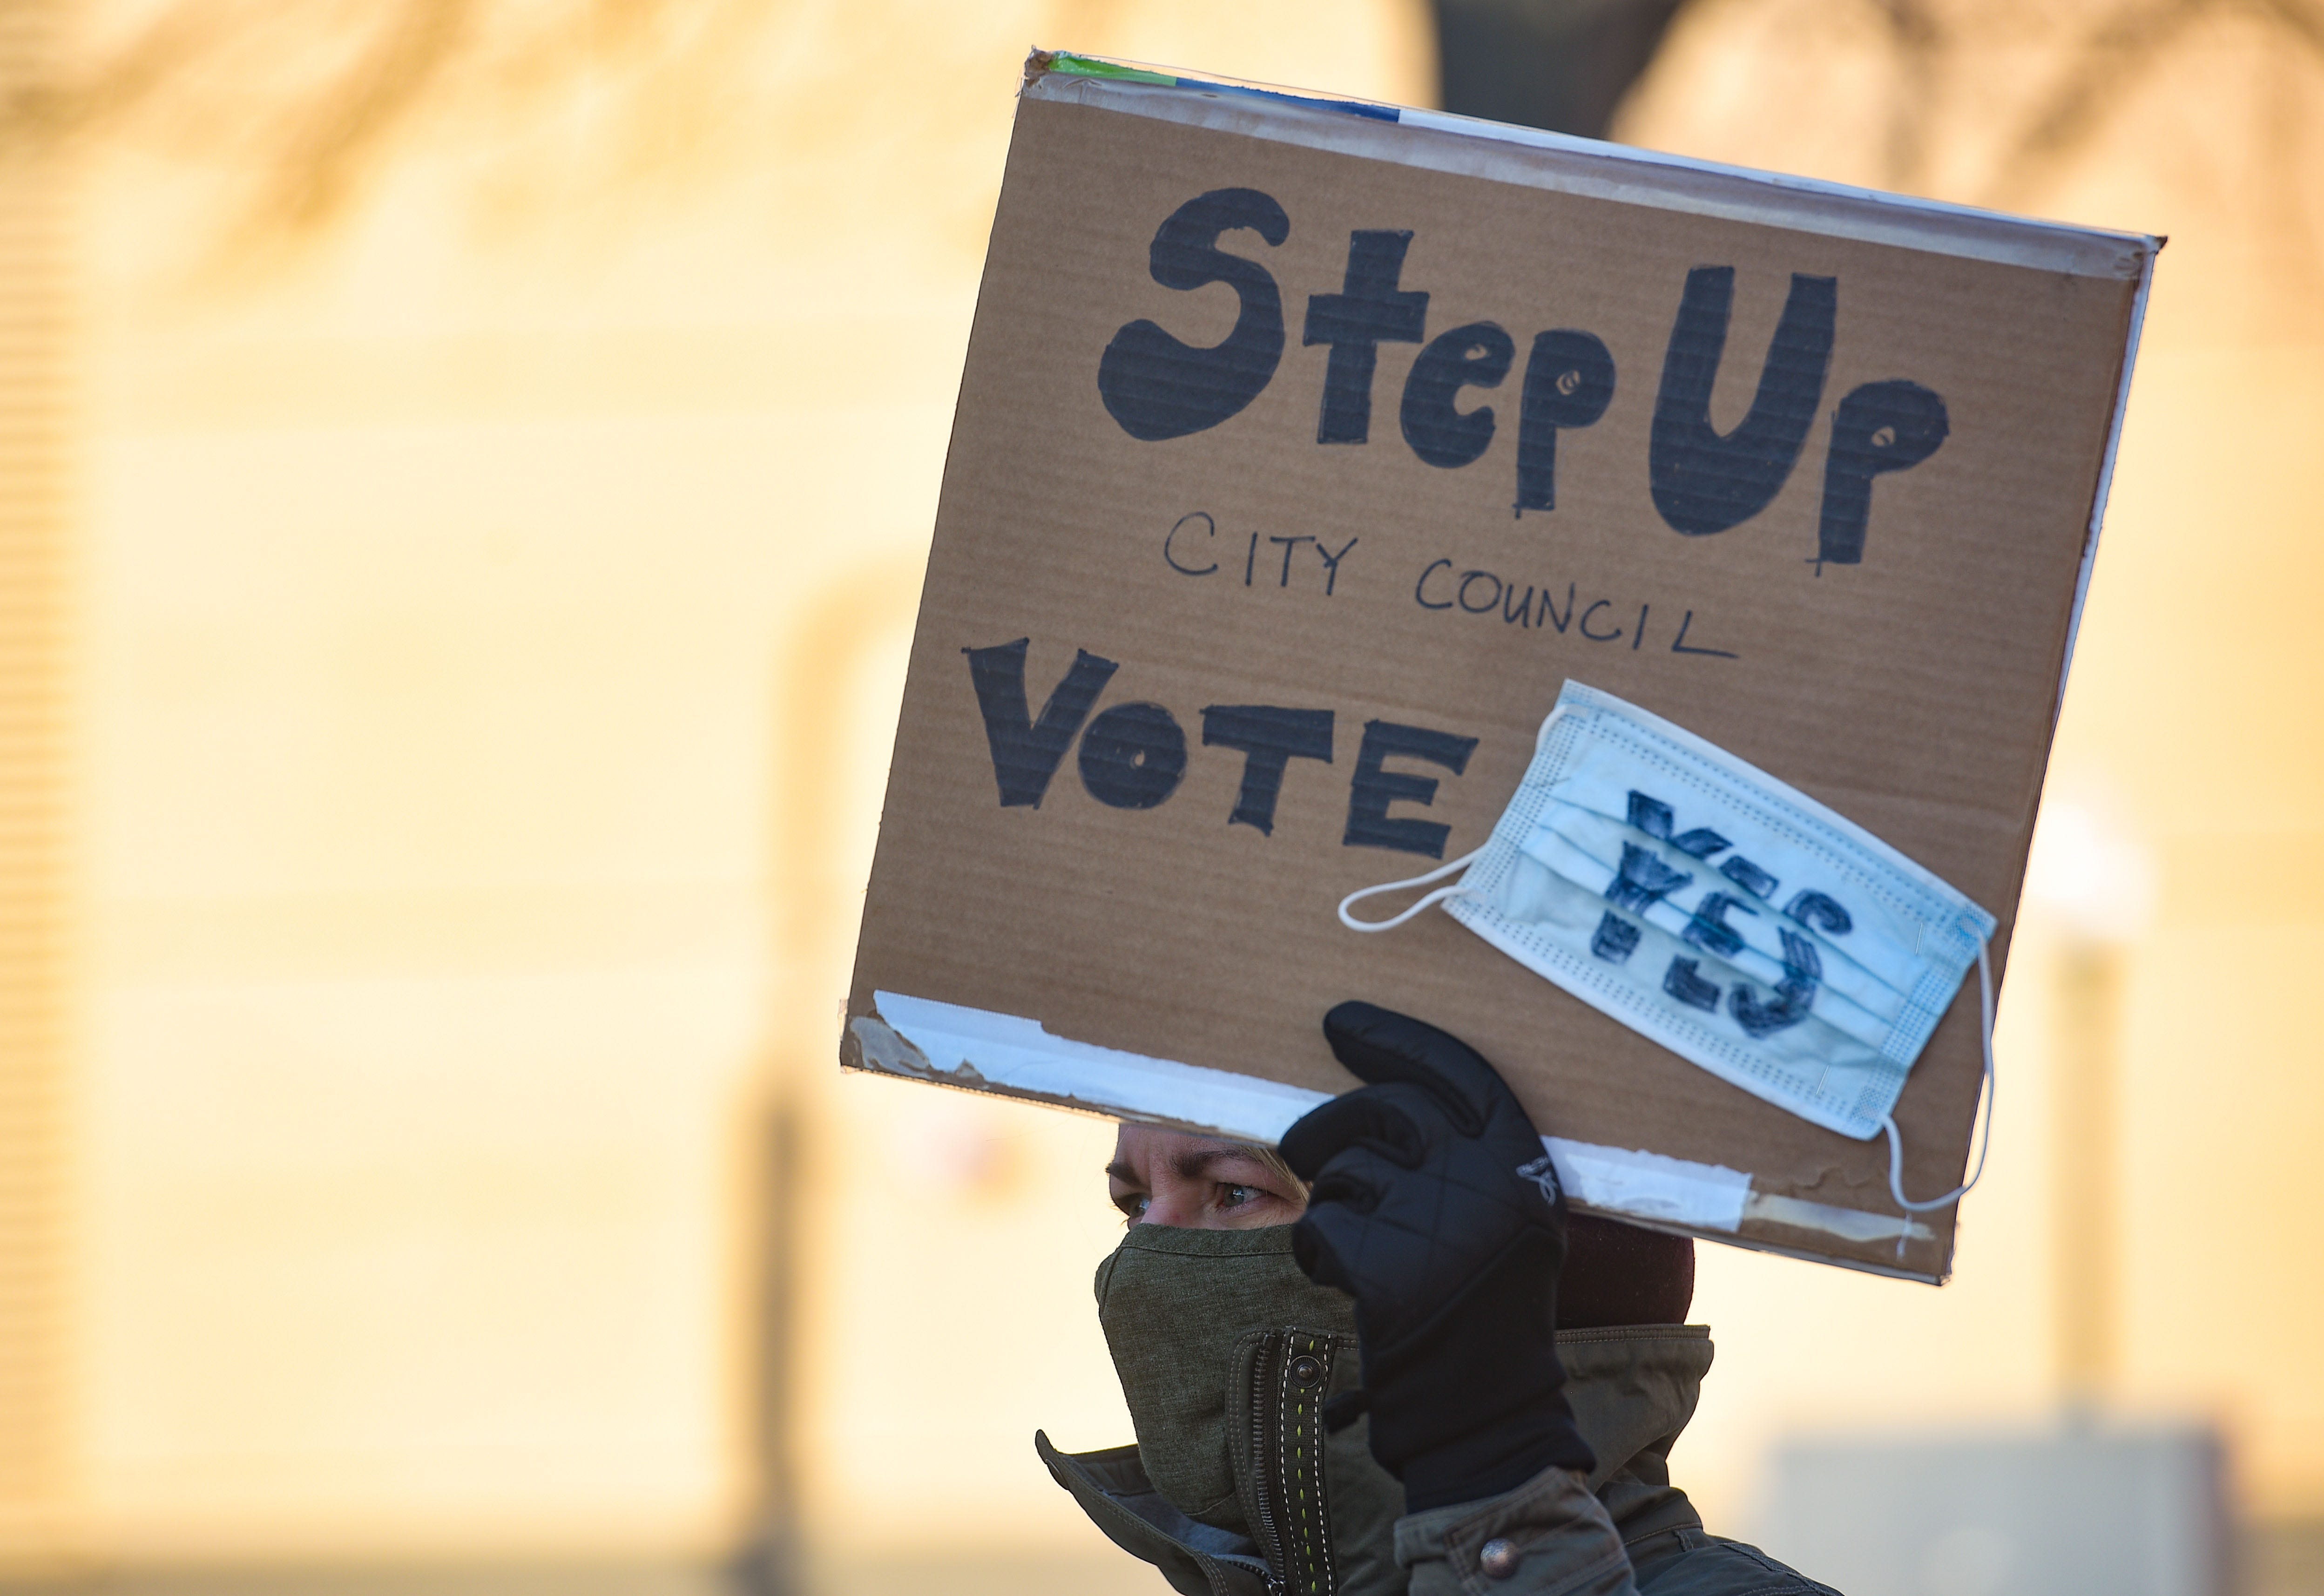 A demonstrator holds a sign demanding a mask mandate from the city council on Monday, November 16, outside Carnegie Town Hall in Sioux Falls.